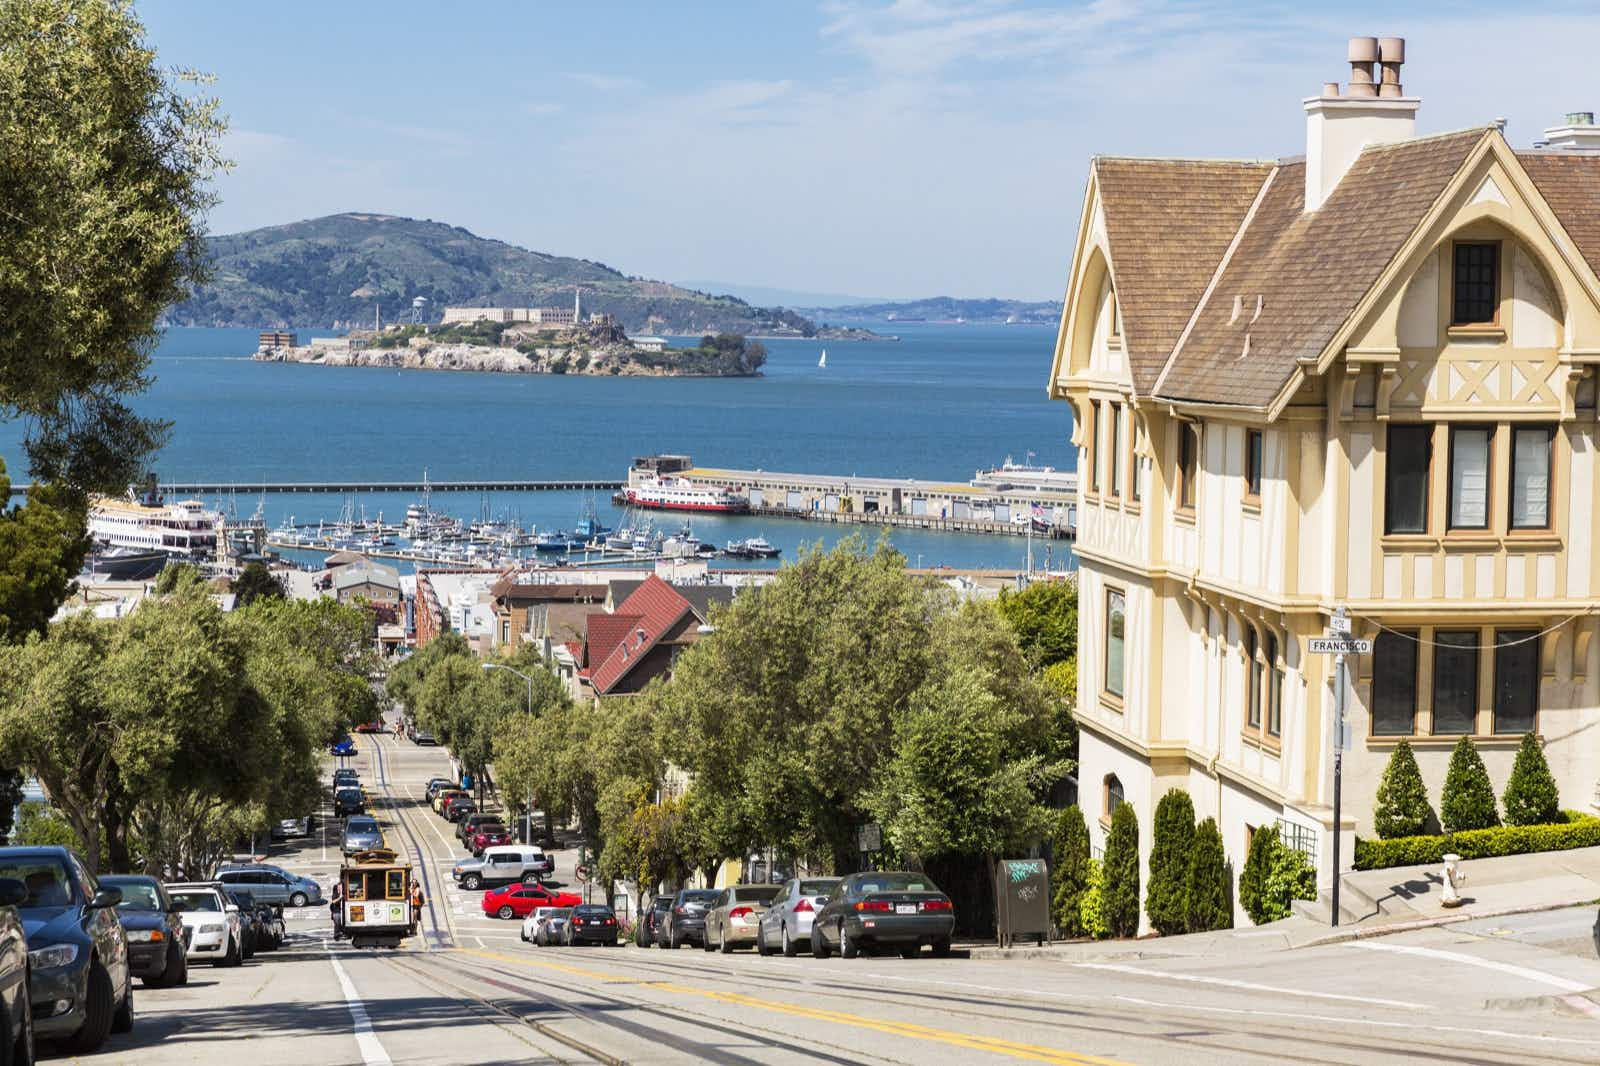 Seeing the highlights list of San Francisco's best sites is easy to do on a perfect weekend © Westend61 / Getty Images